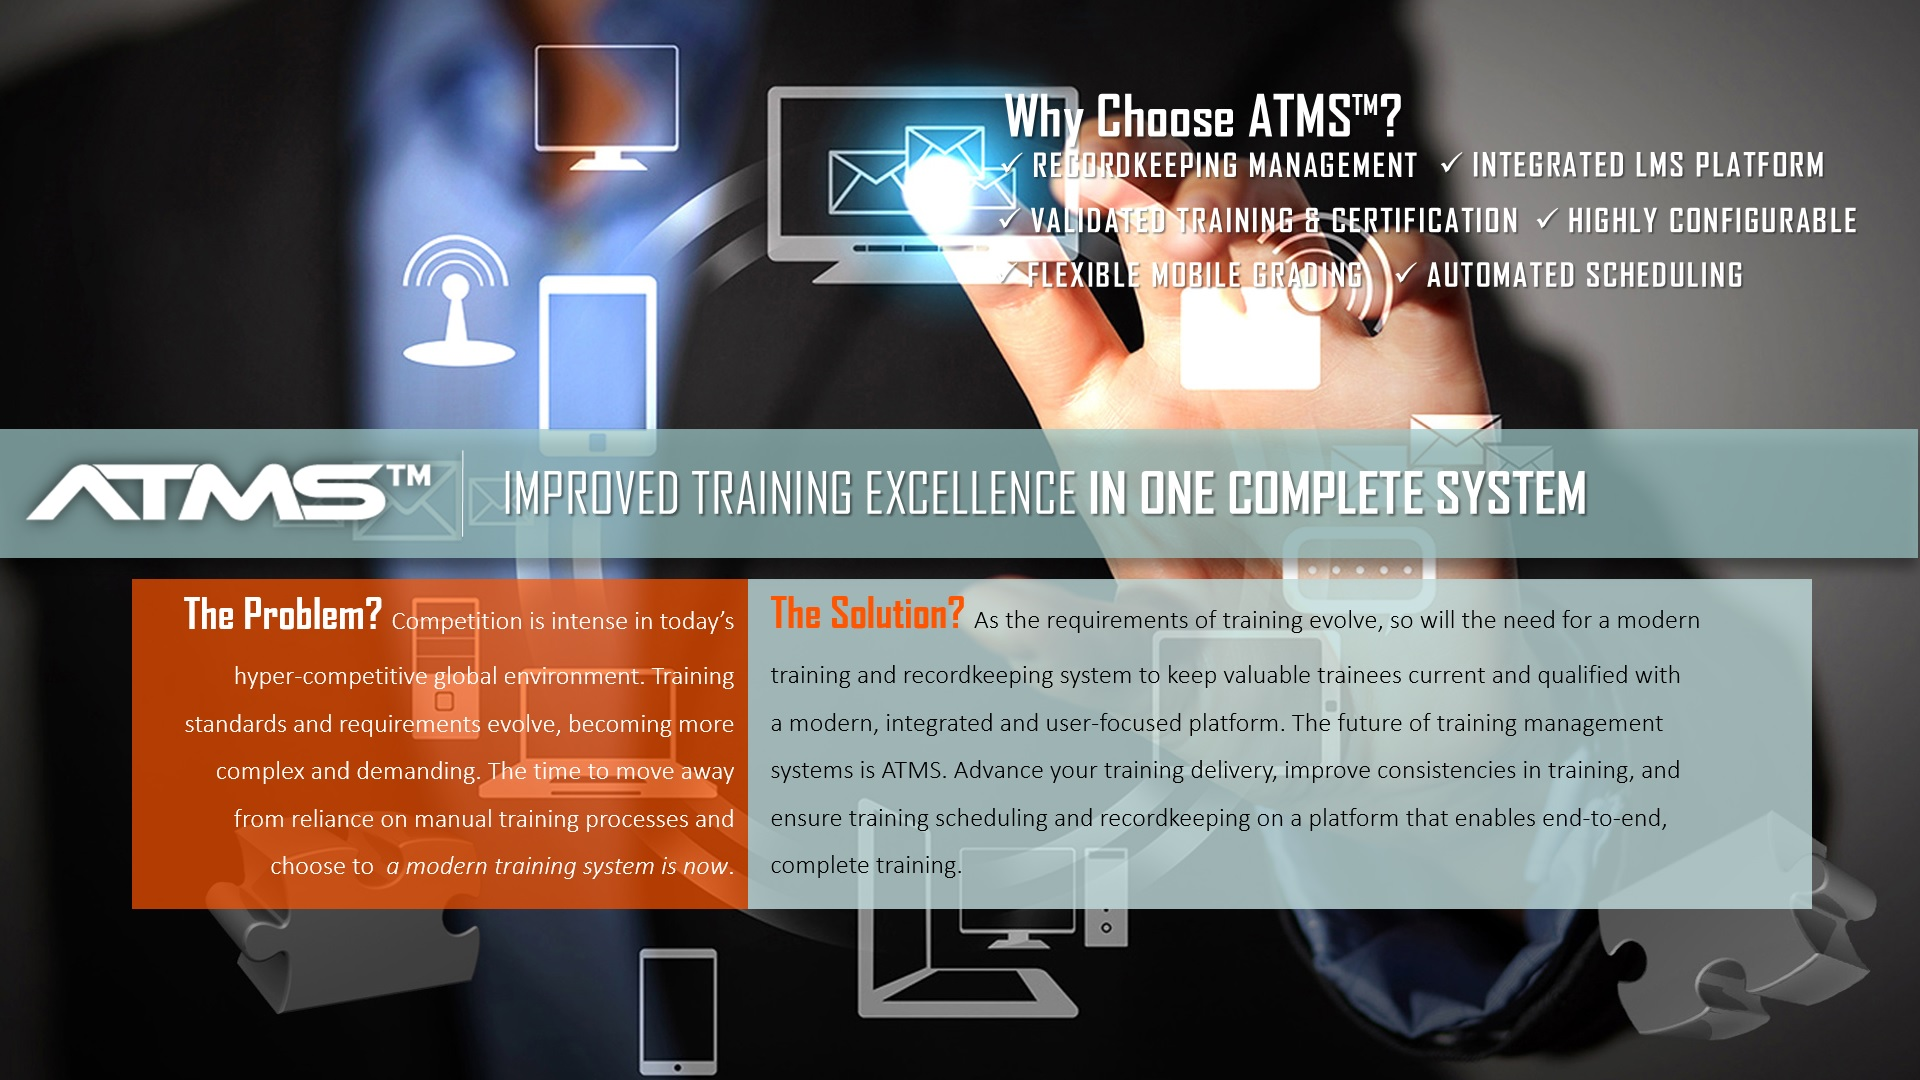 ATMS-Advance-Training-Management-System-Slide-3-1